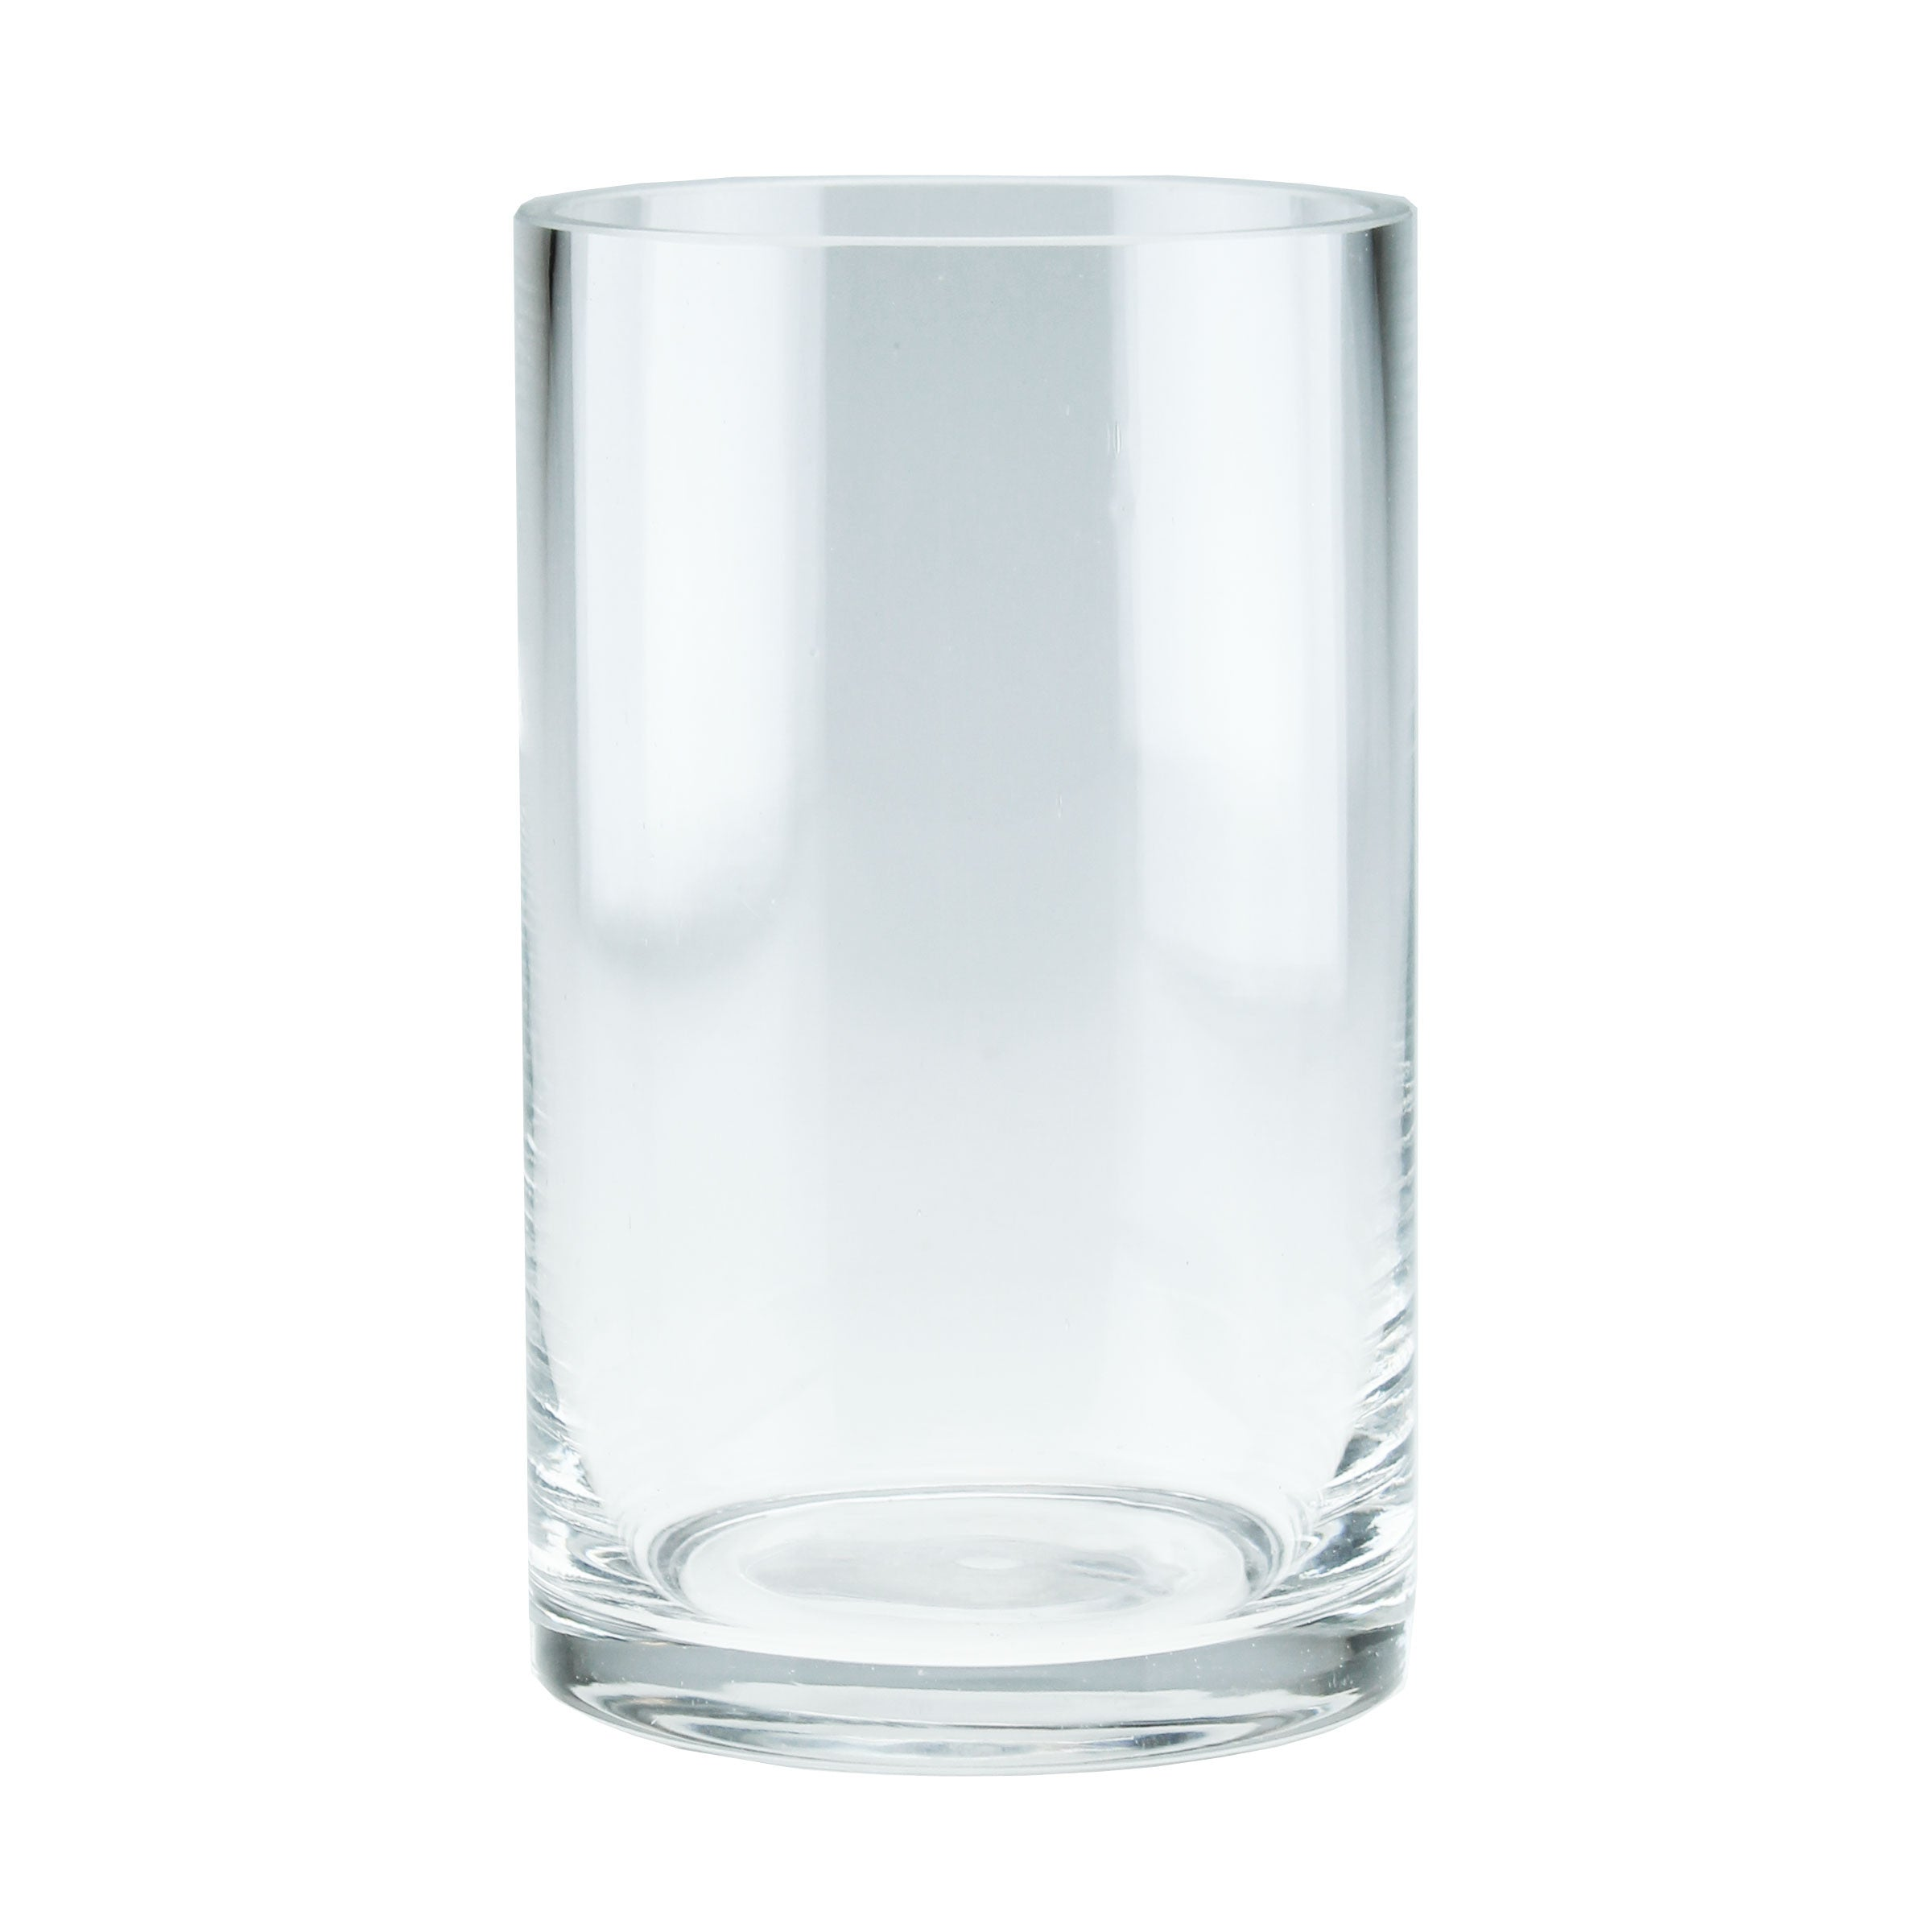 "3.5 x 6"" Clear Glass Candle Holder Vase"